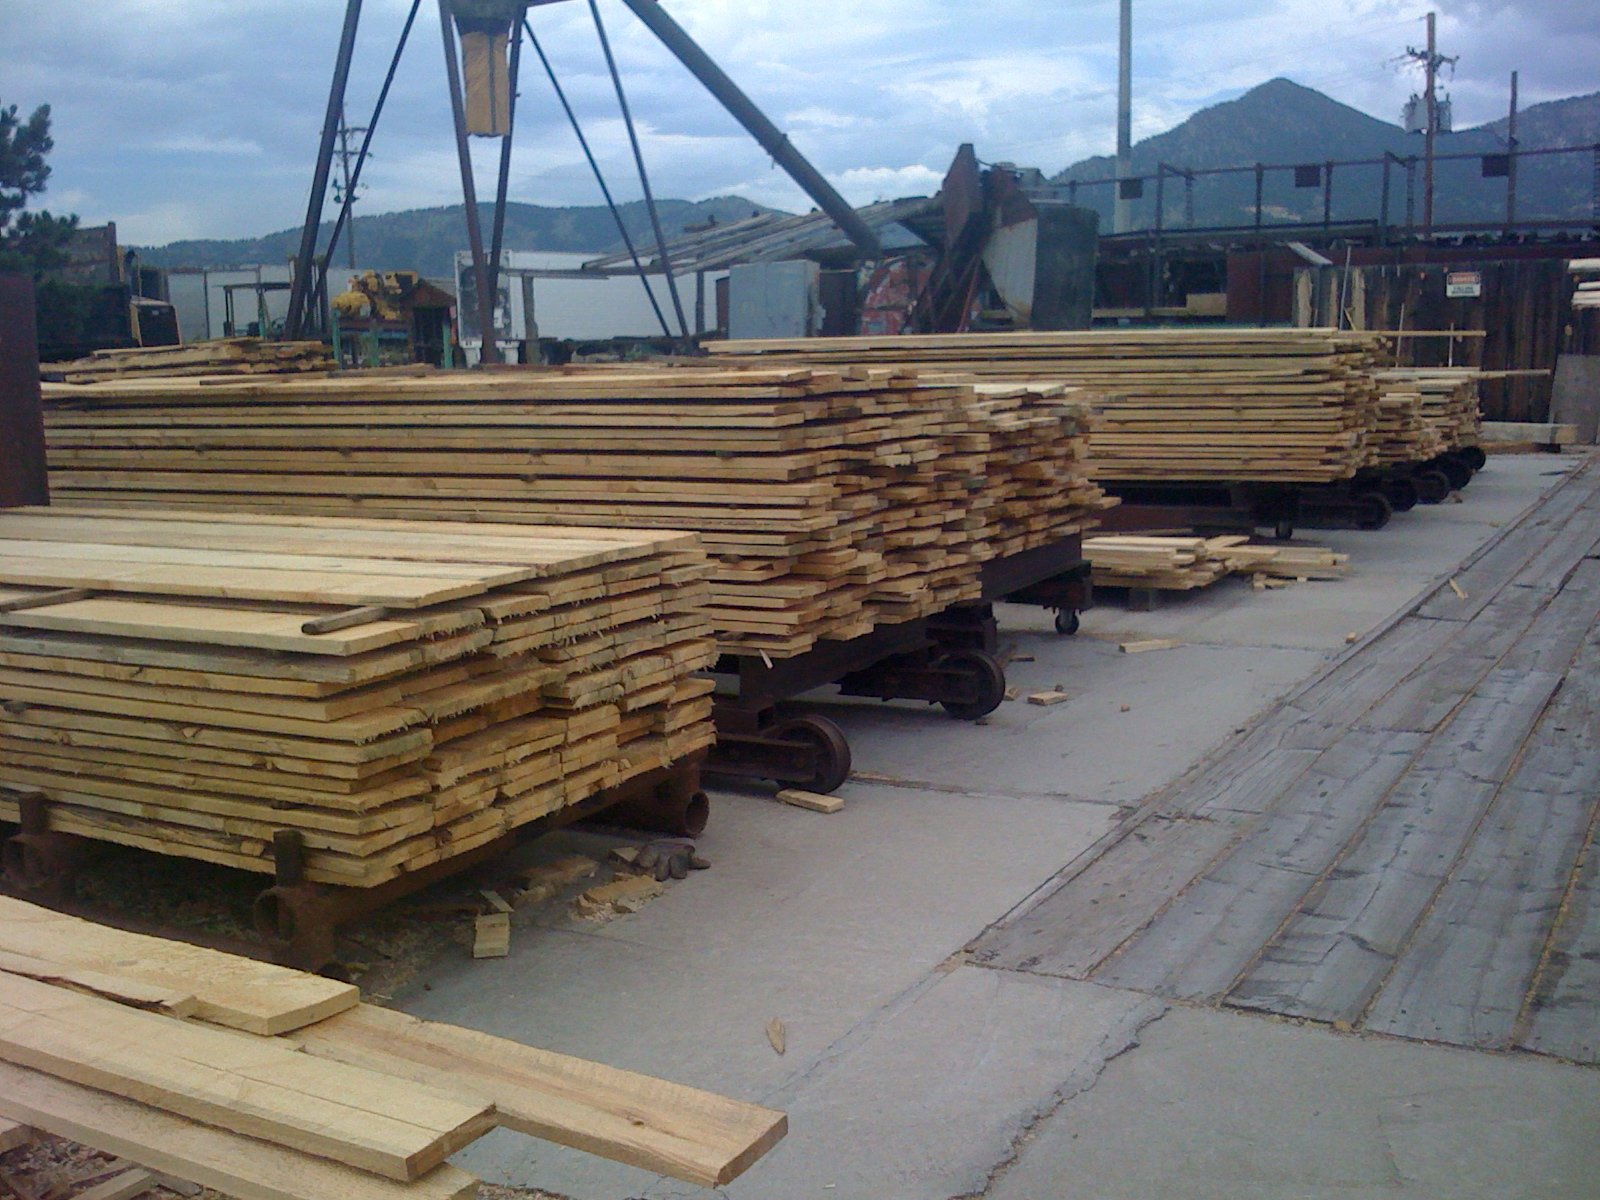 Rough Lumber stacks